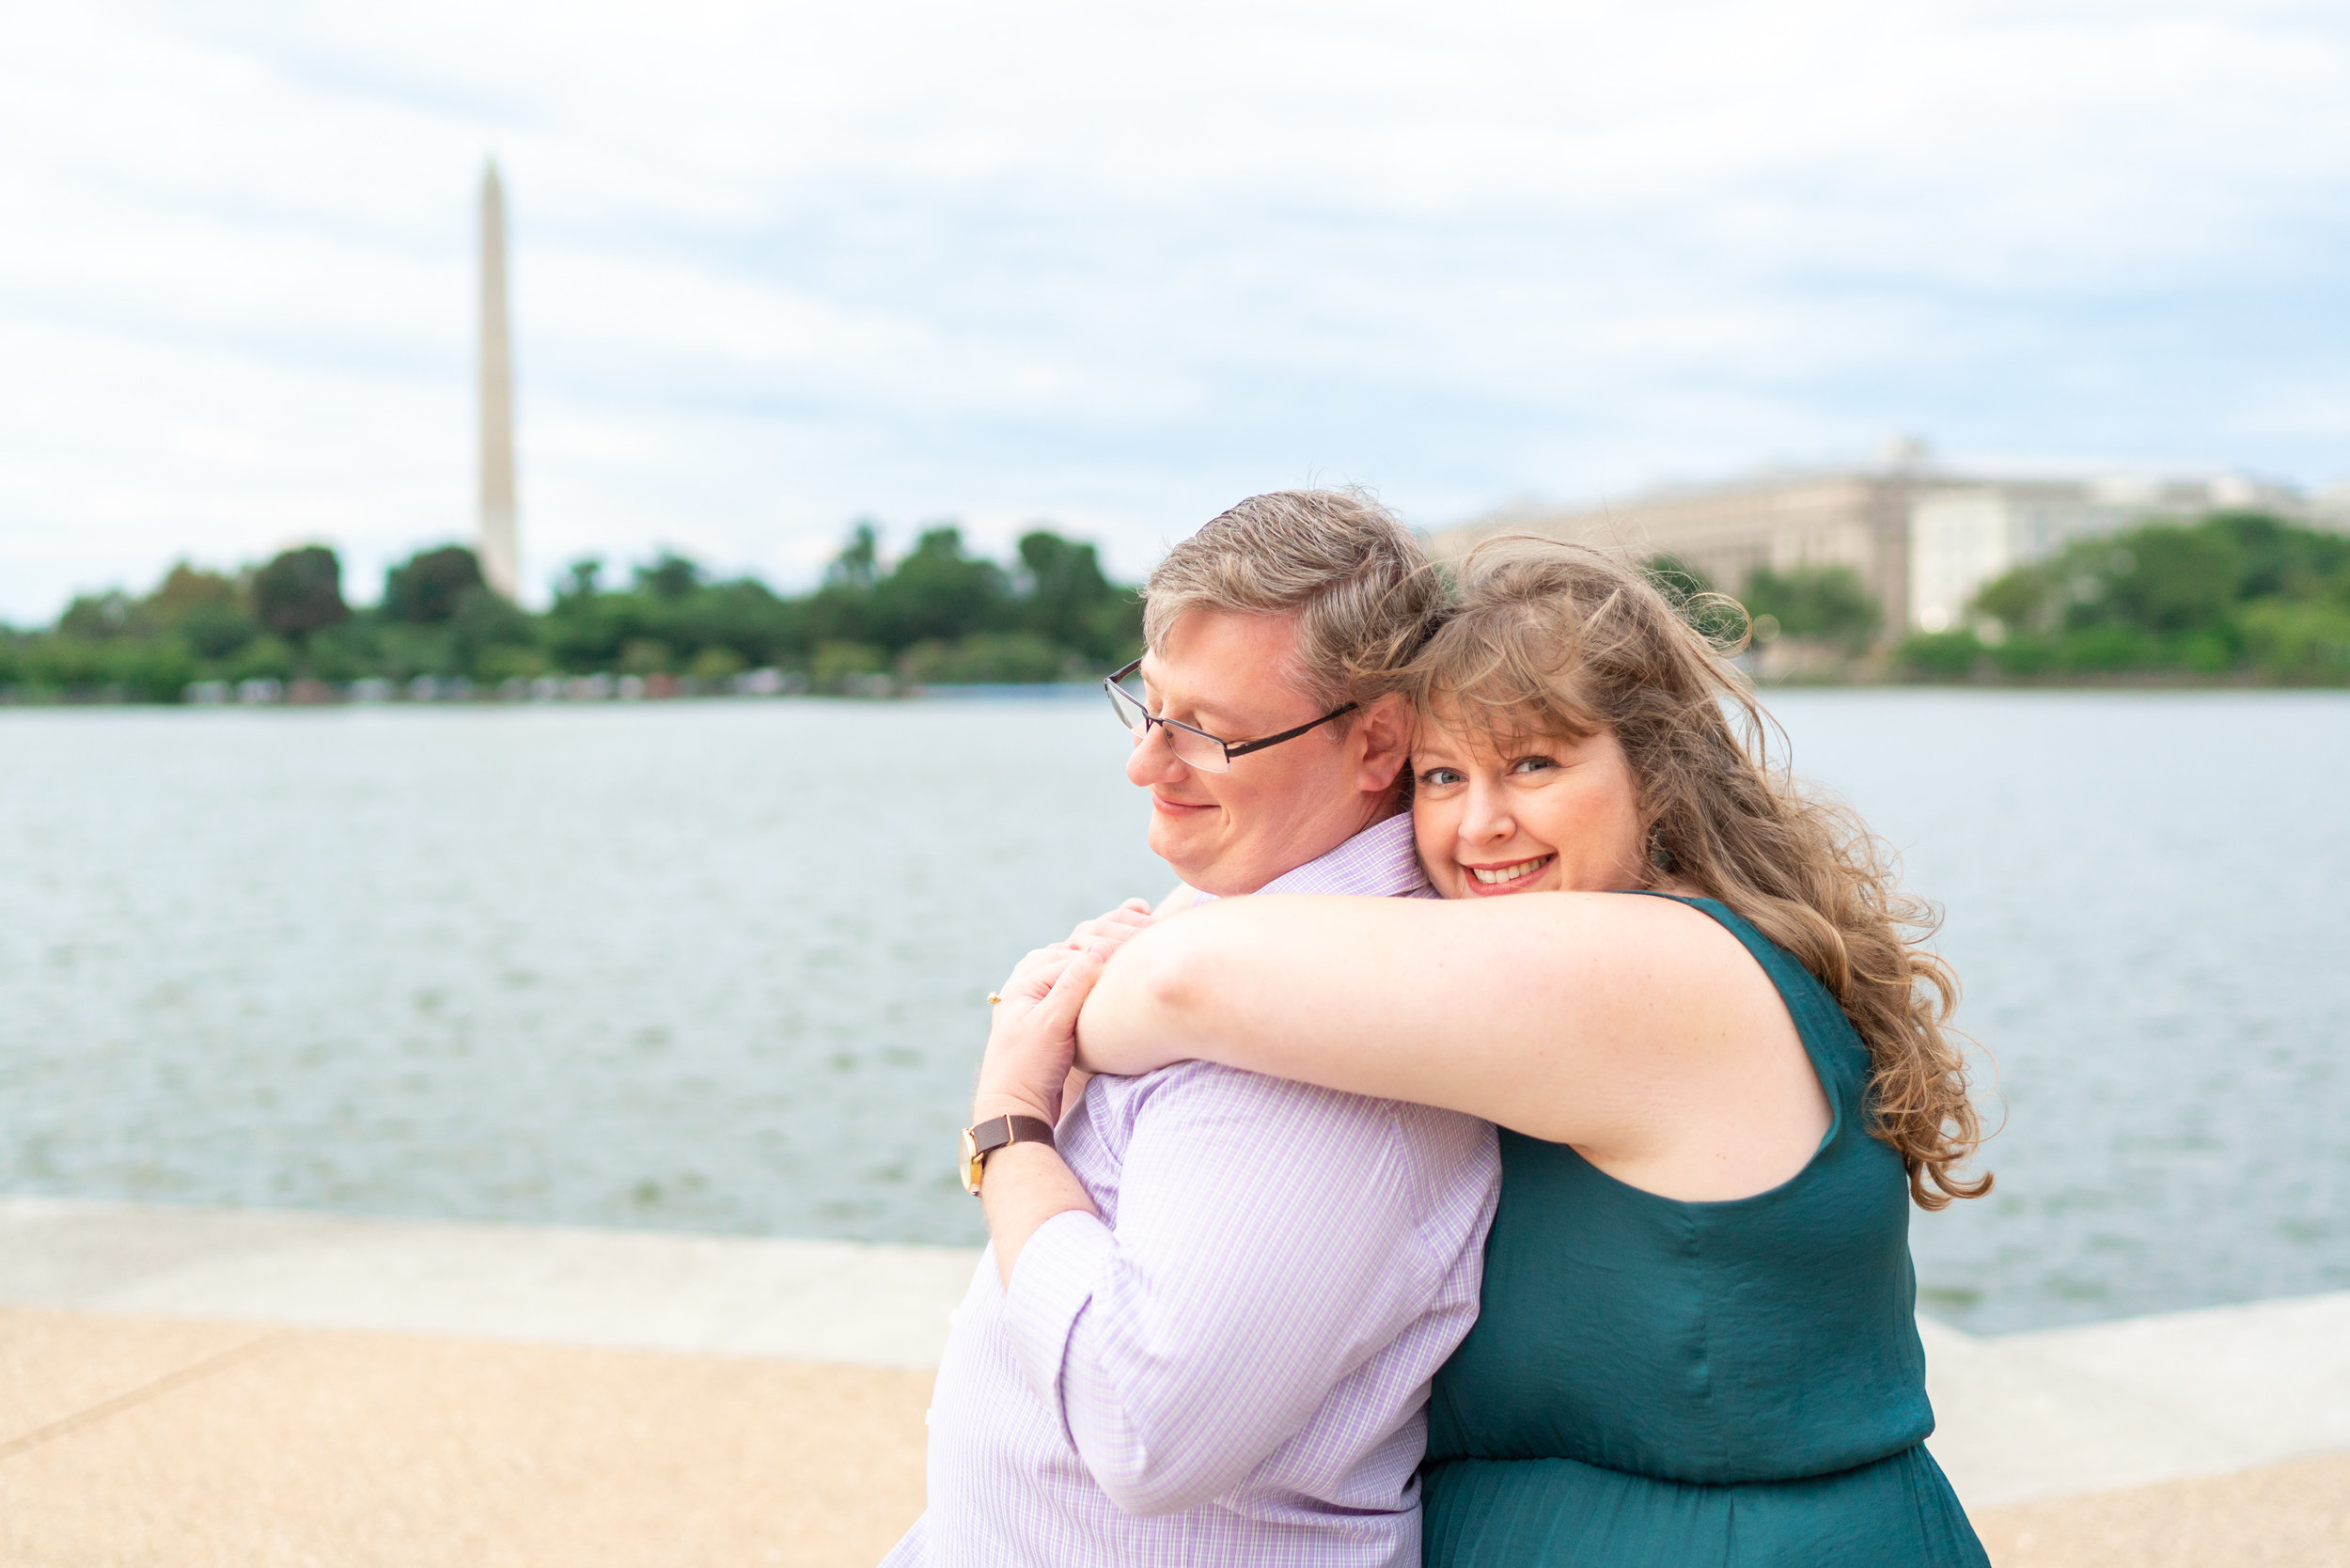 Engagement photos at the foot of the Jefferson memorial